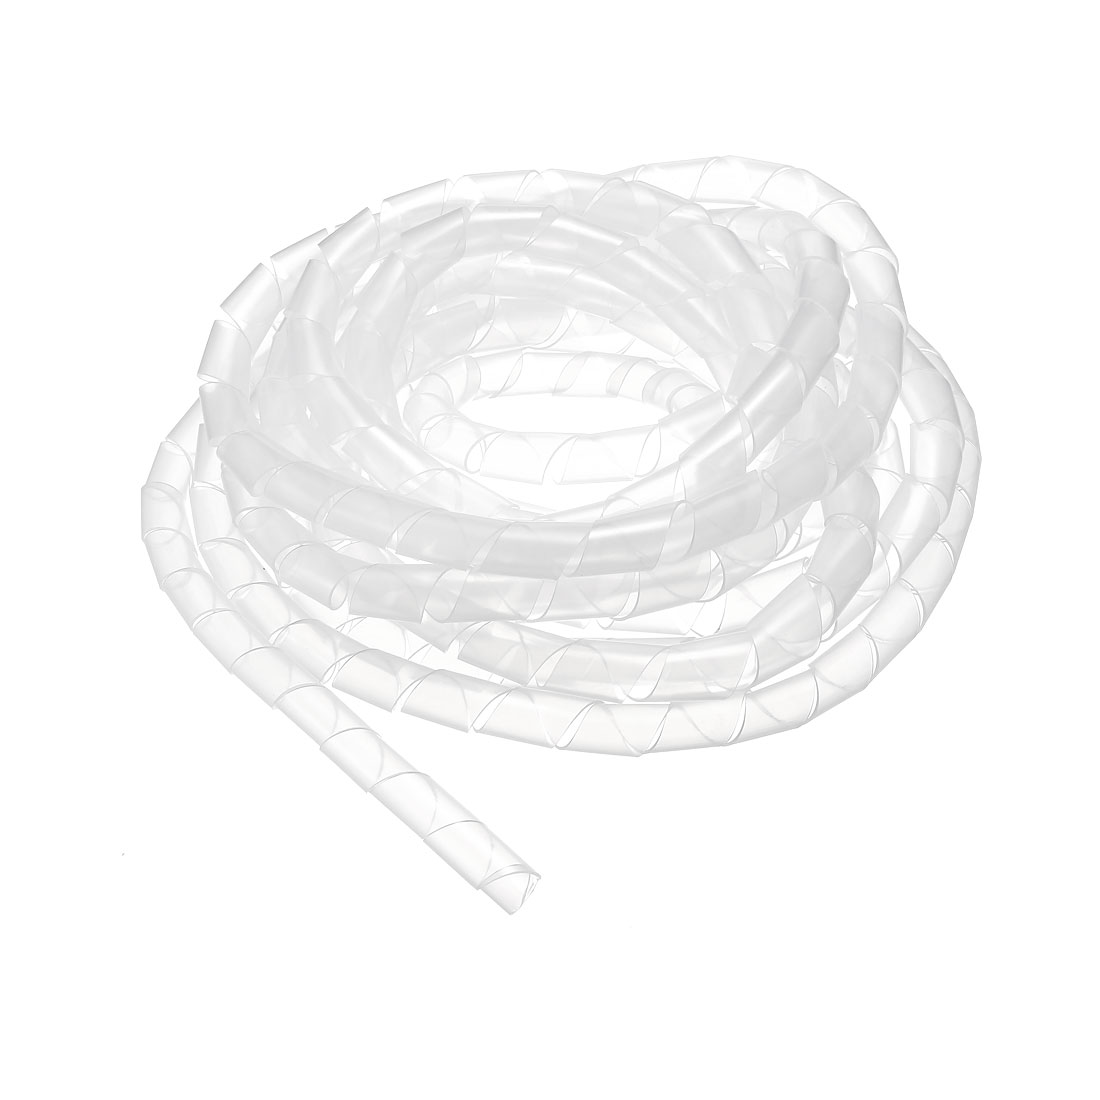 13mm Flexible Spiral Tube Cable Wire Wrap Computer Manage Cord 5.5M Transparent